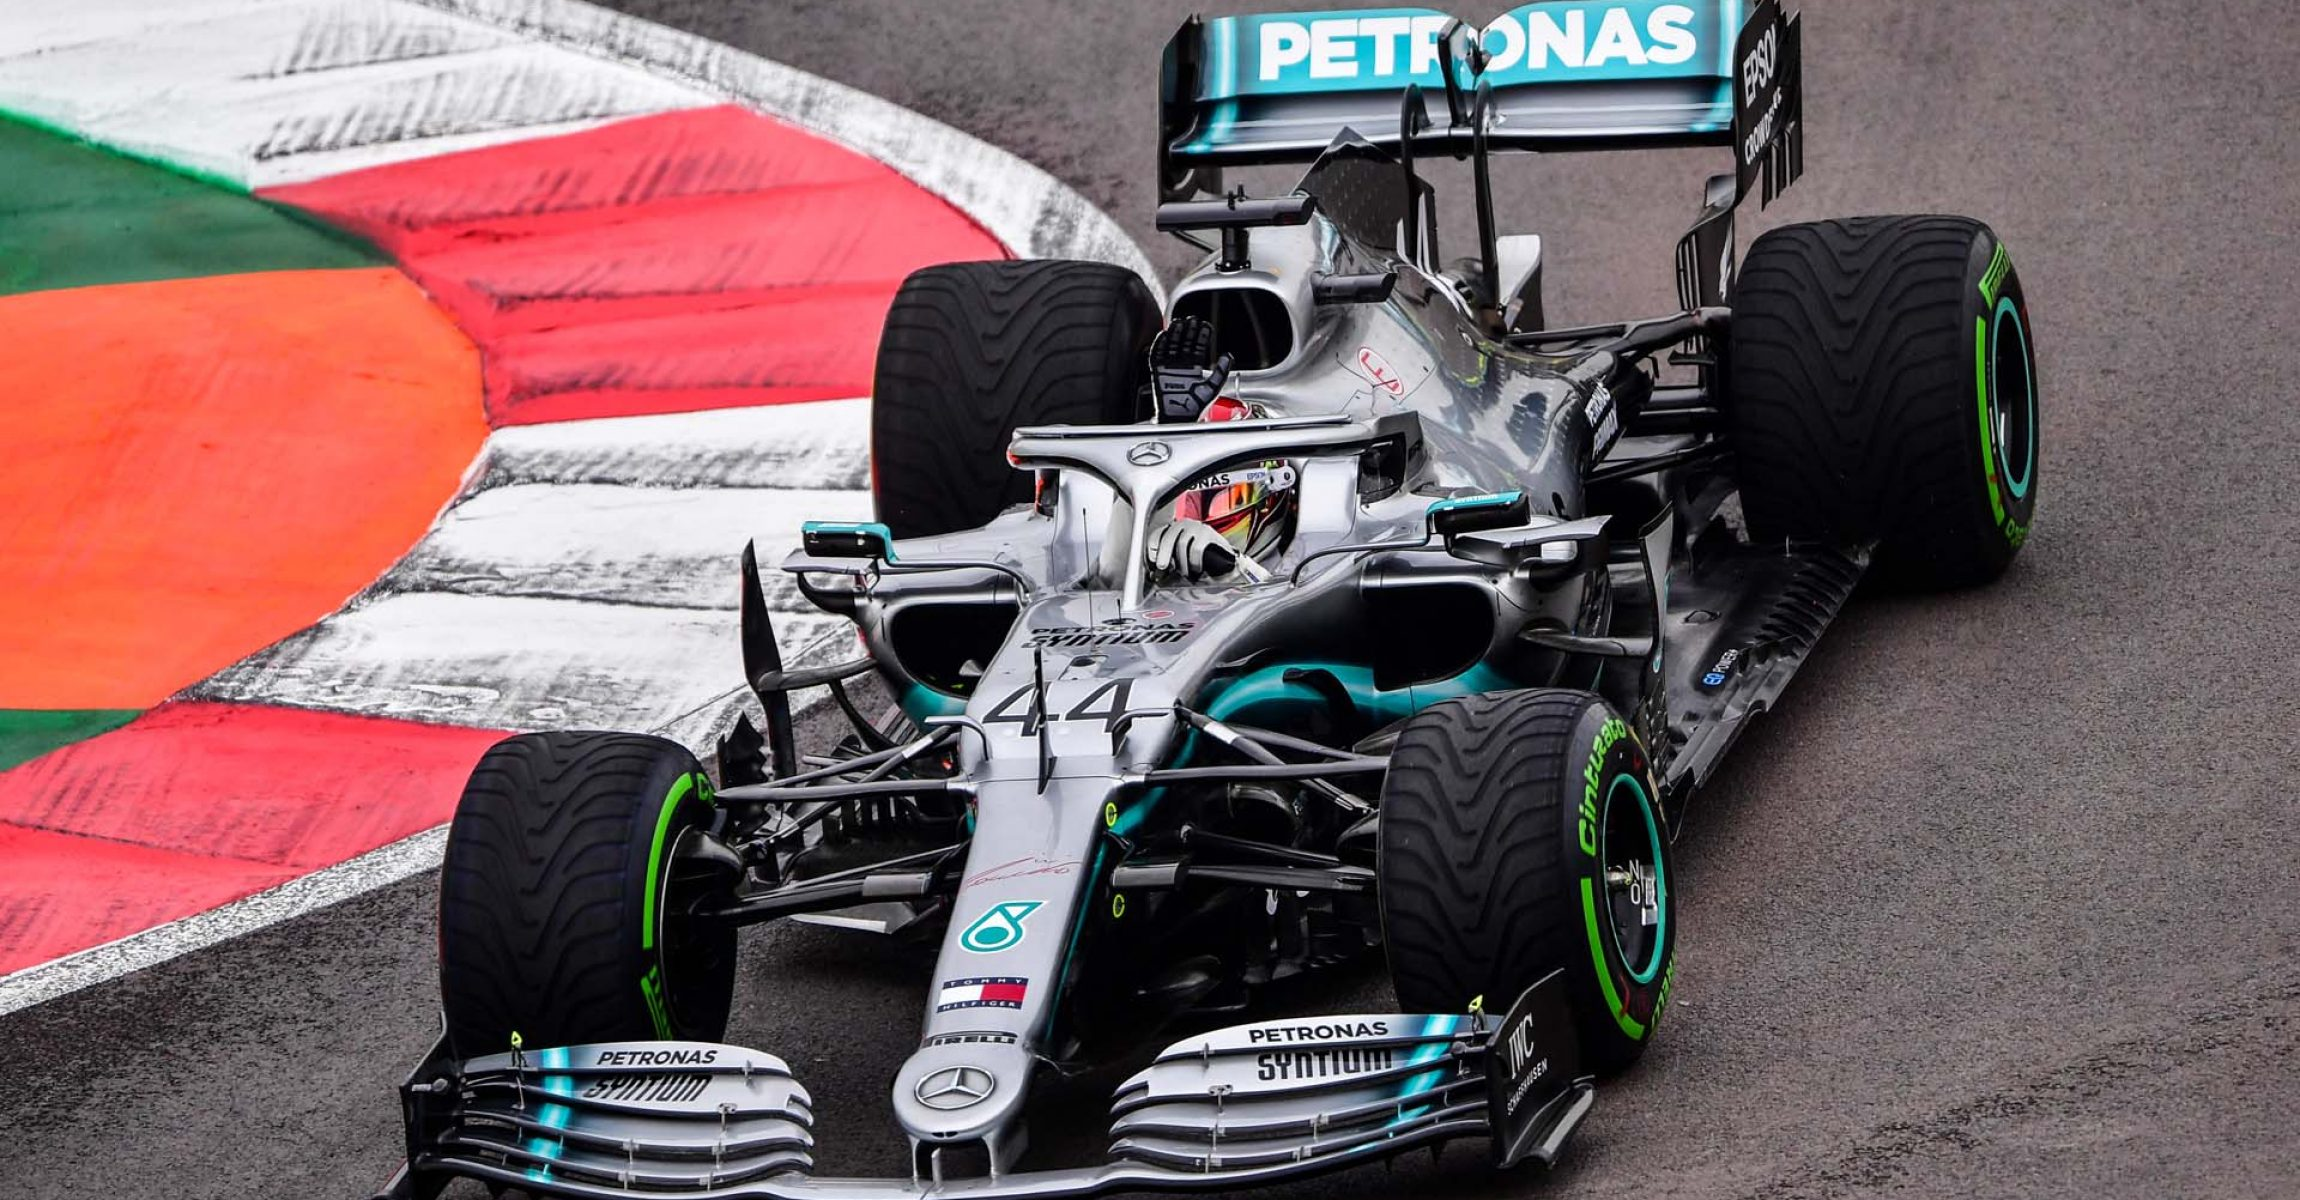 2019 Mexican Grand Prix, Friday - LAT Images Mercedes Lewis Hamilton